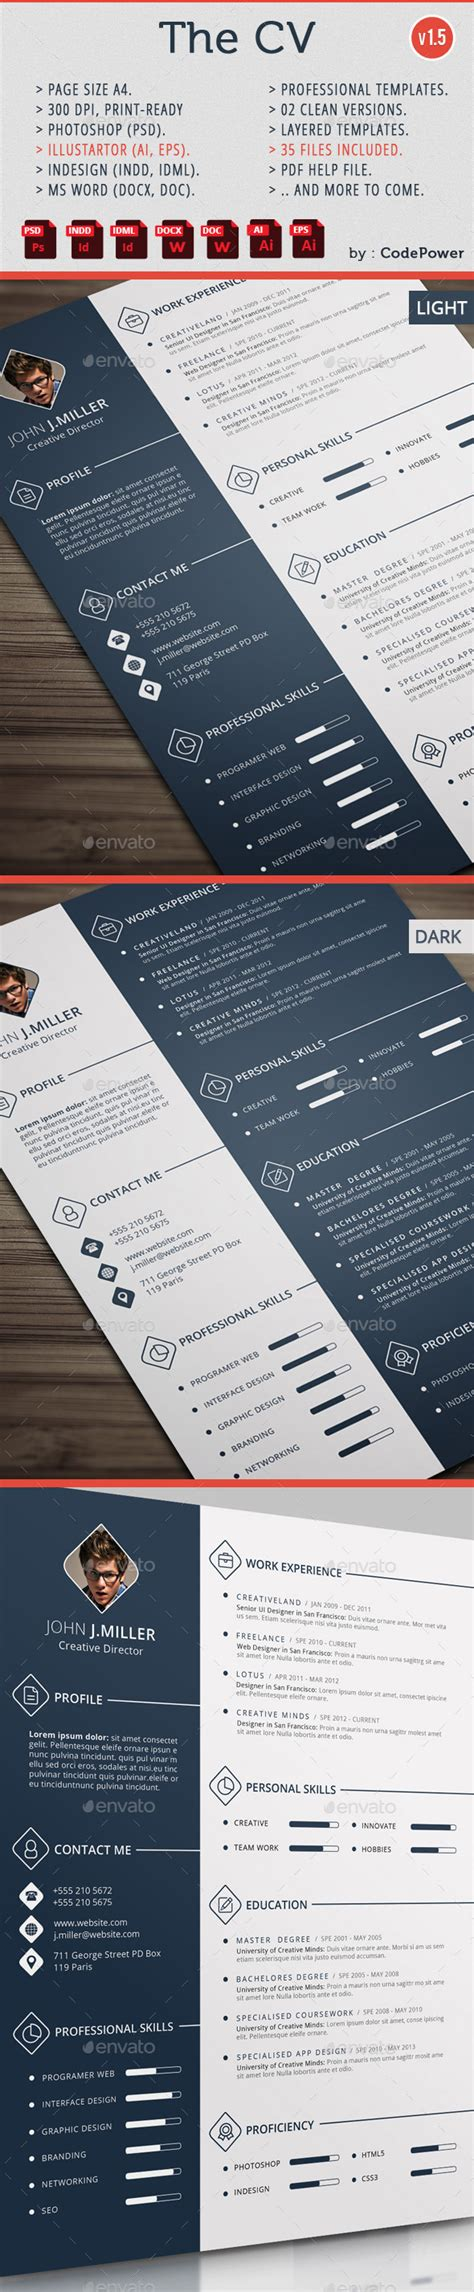 top 10 awesome creative resume templates for 2016